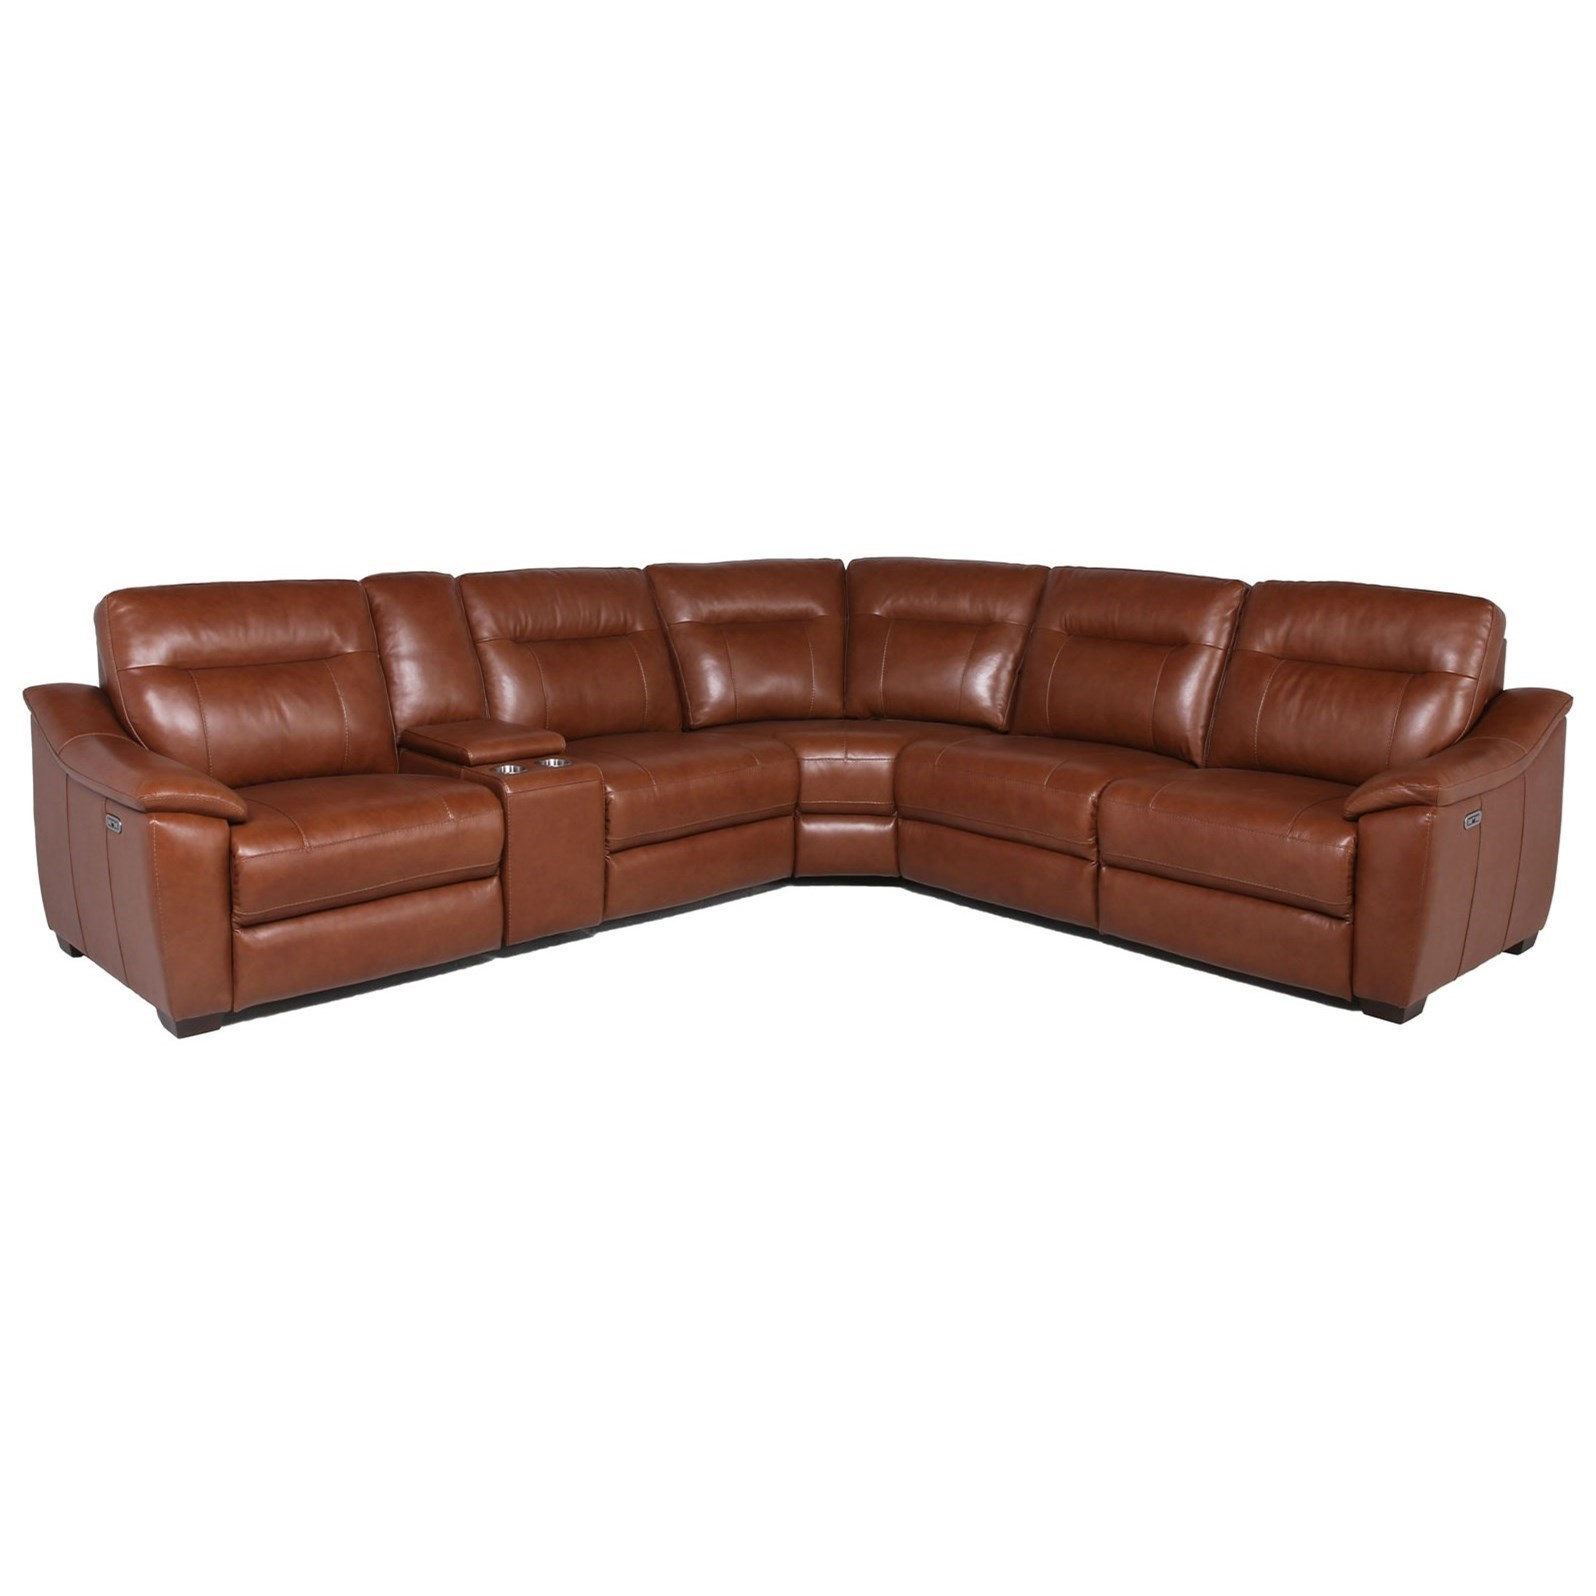 Casa Power Reclining 6-Piece Sectional by Steve Silver at Standard Furniture